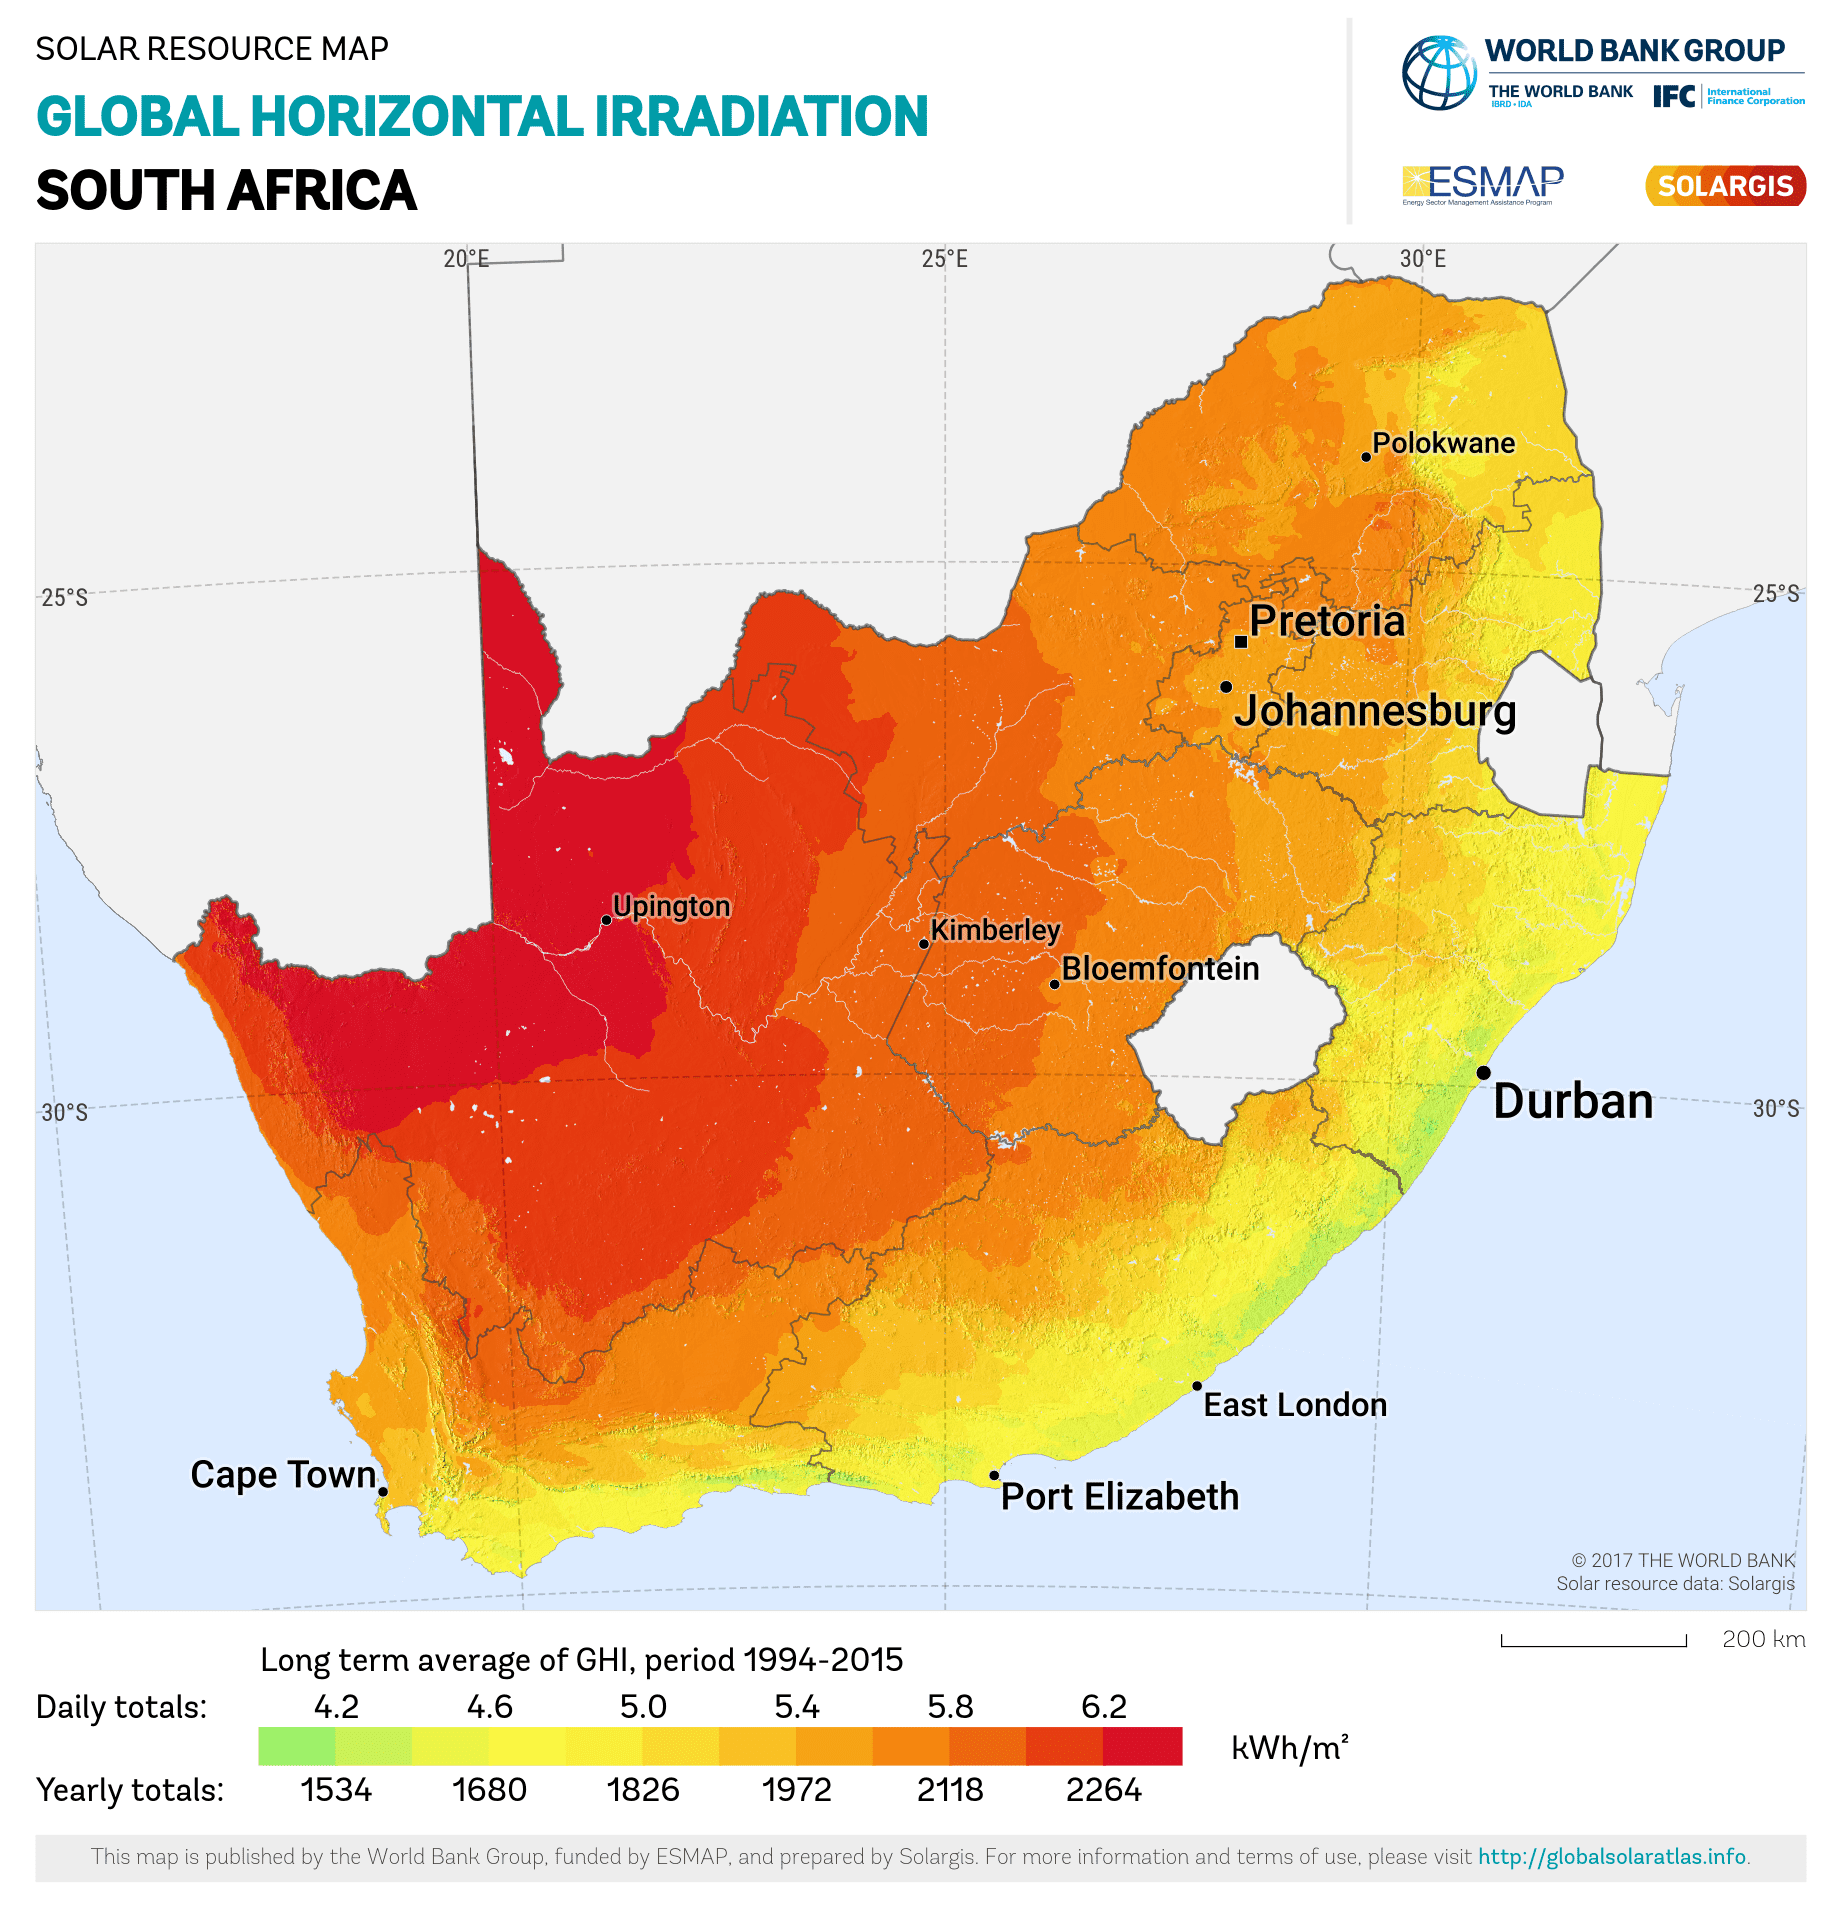 South Africa's Solar Irradiation